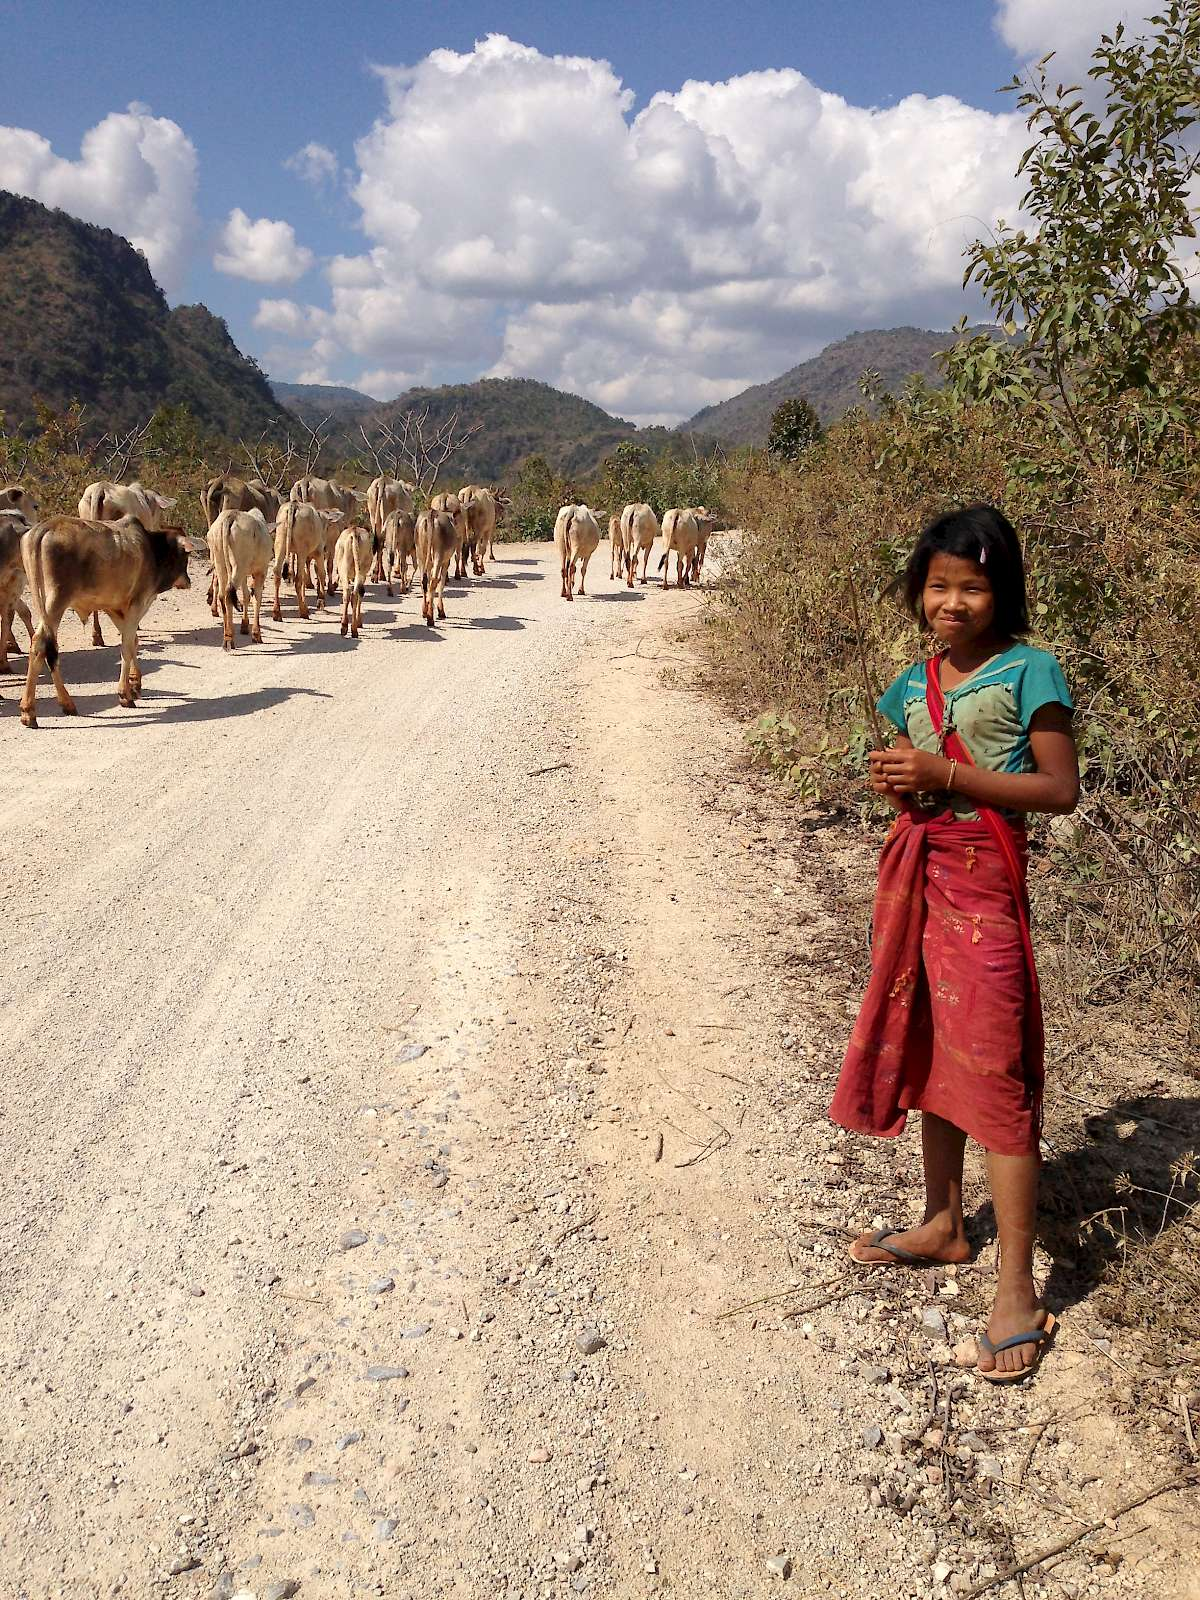 Typical road in Burma.